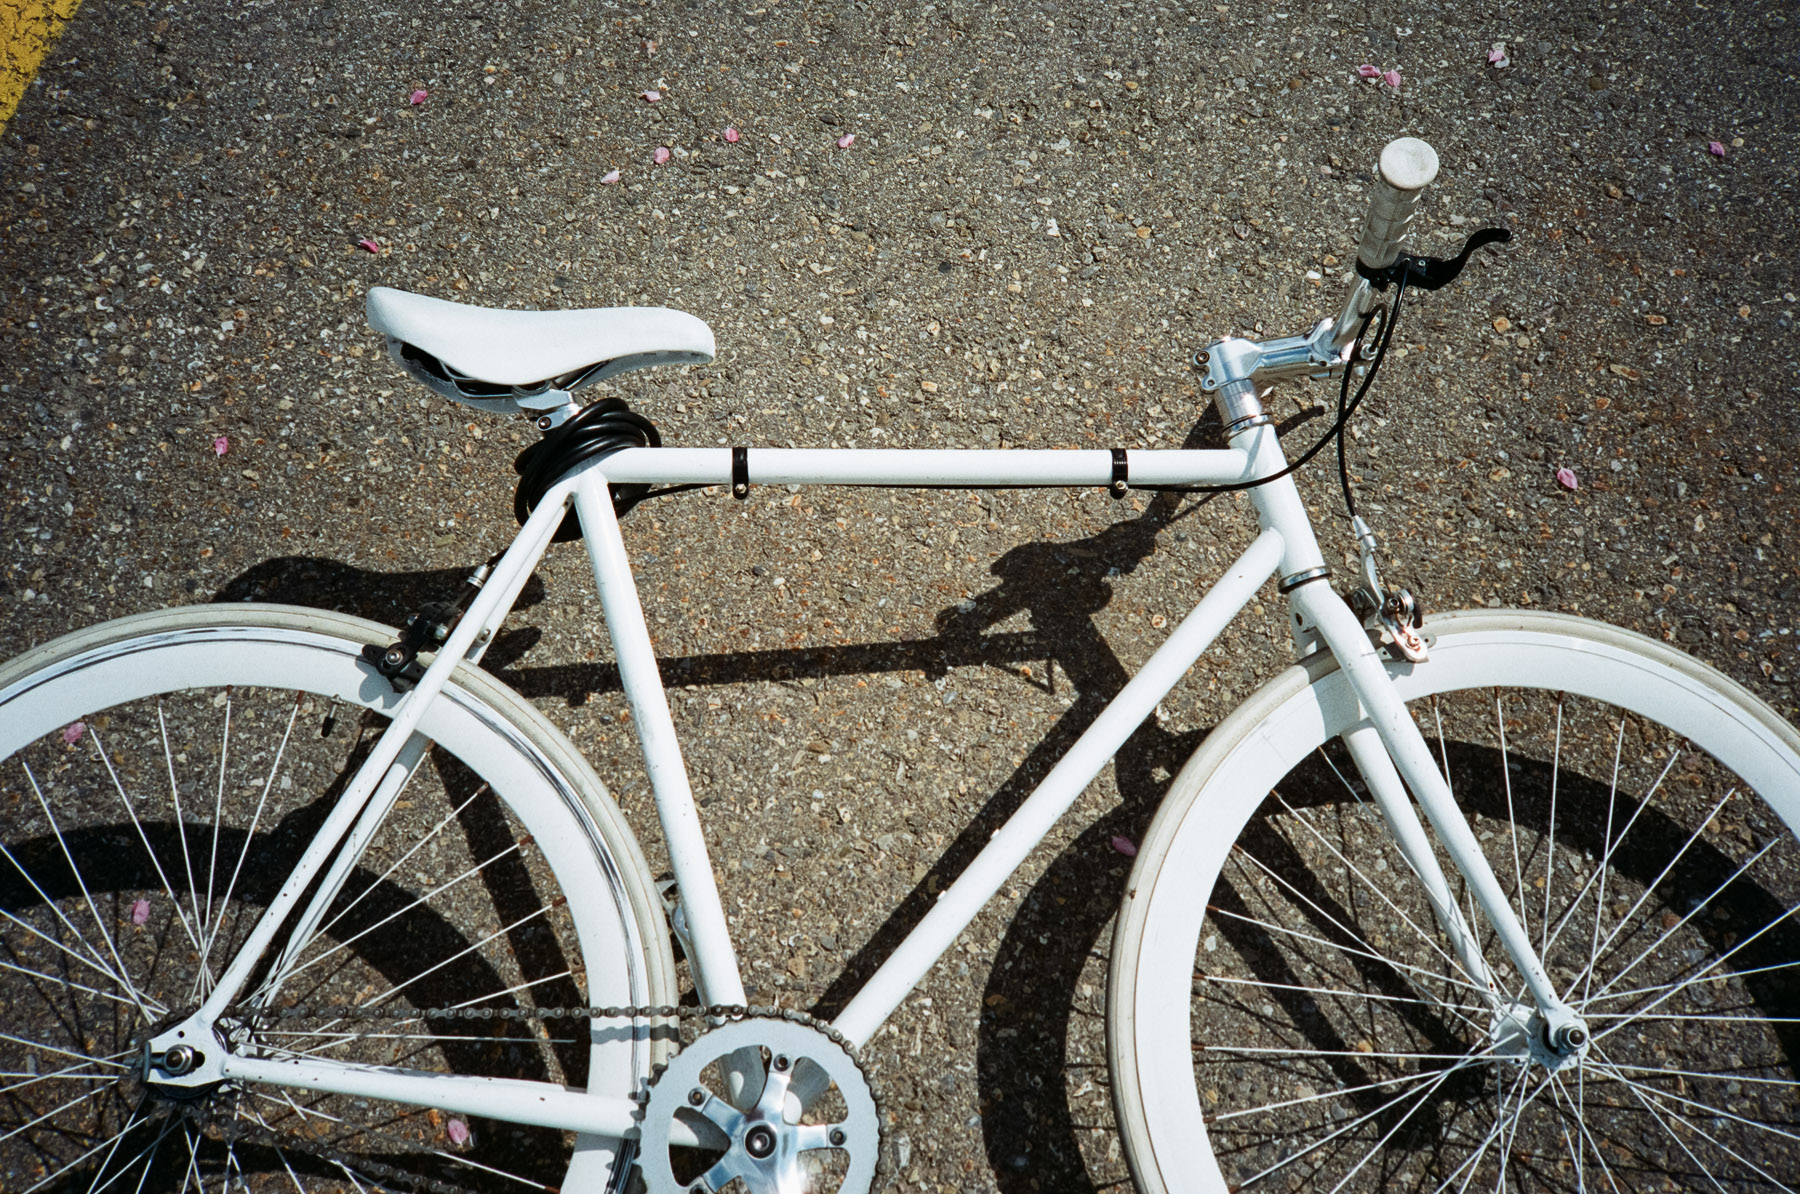 My bright white bike